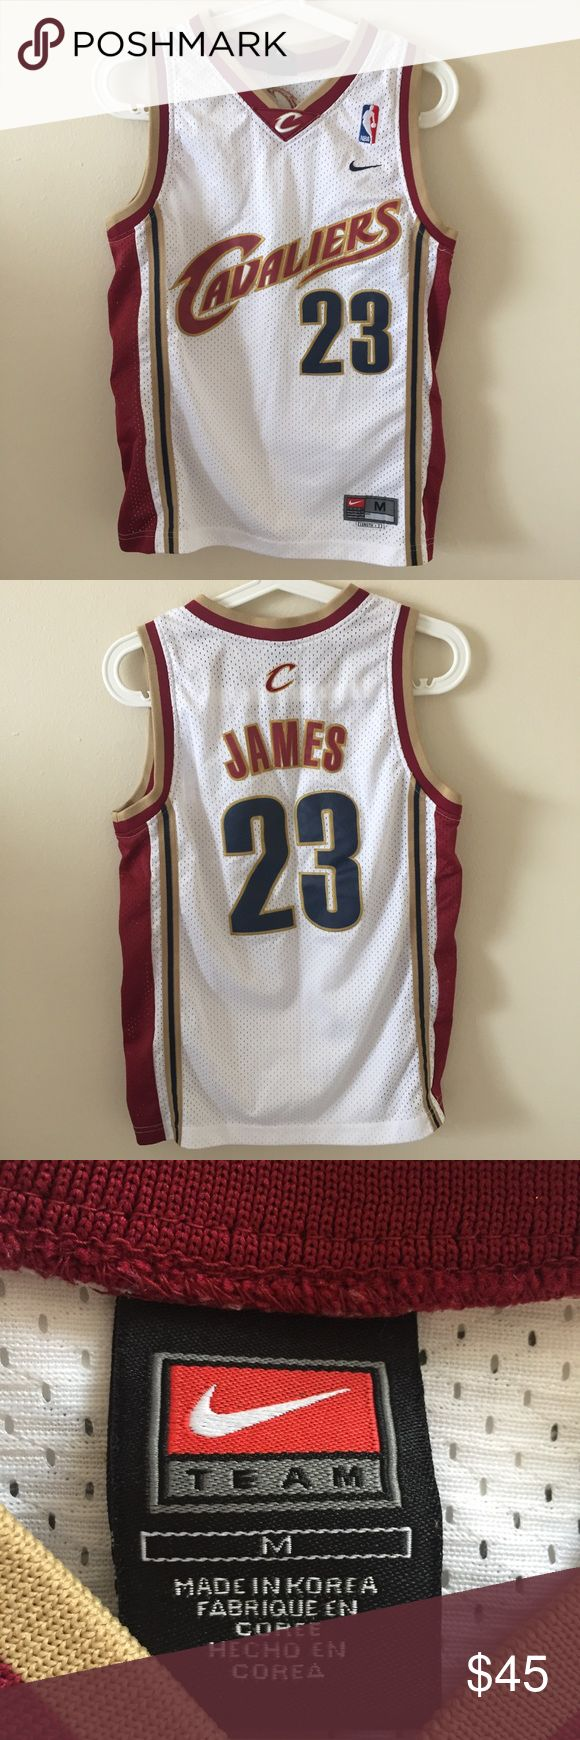 Cavs black t shirt jersey - Cleveland Cavaliers 2003 Lebron James Jersey Ym